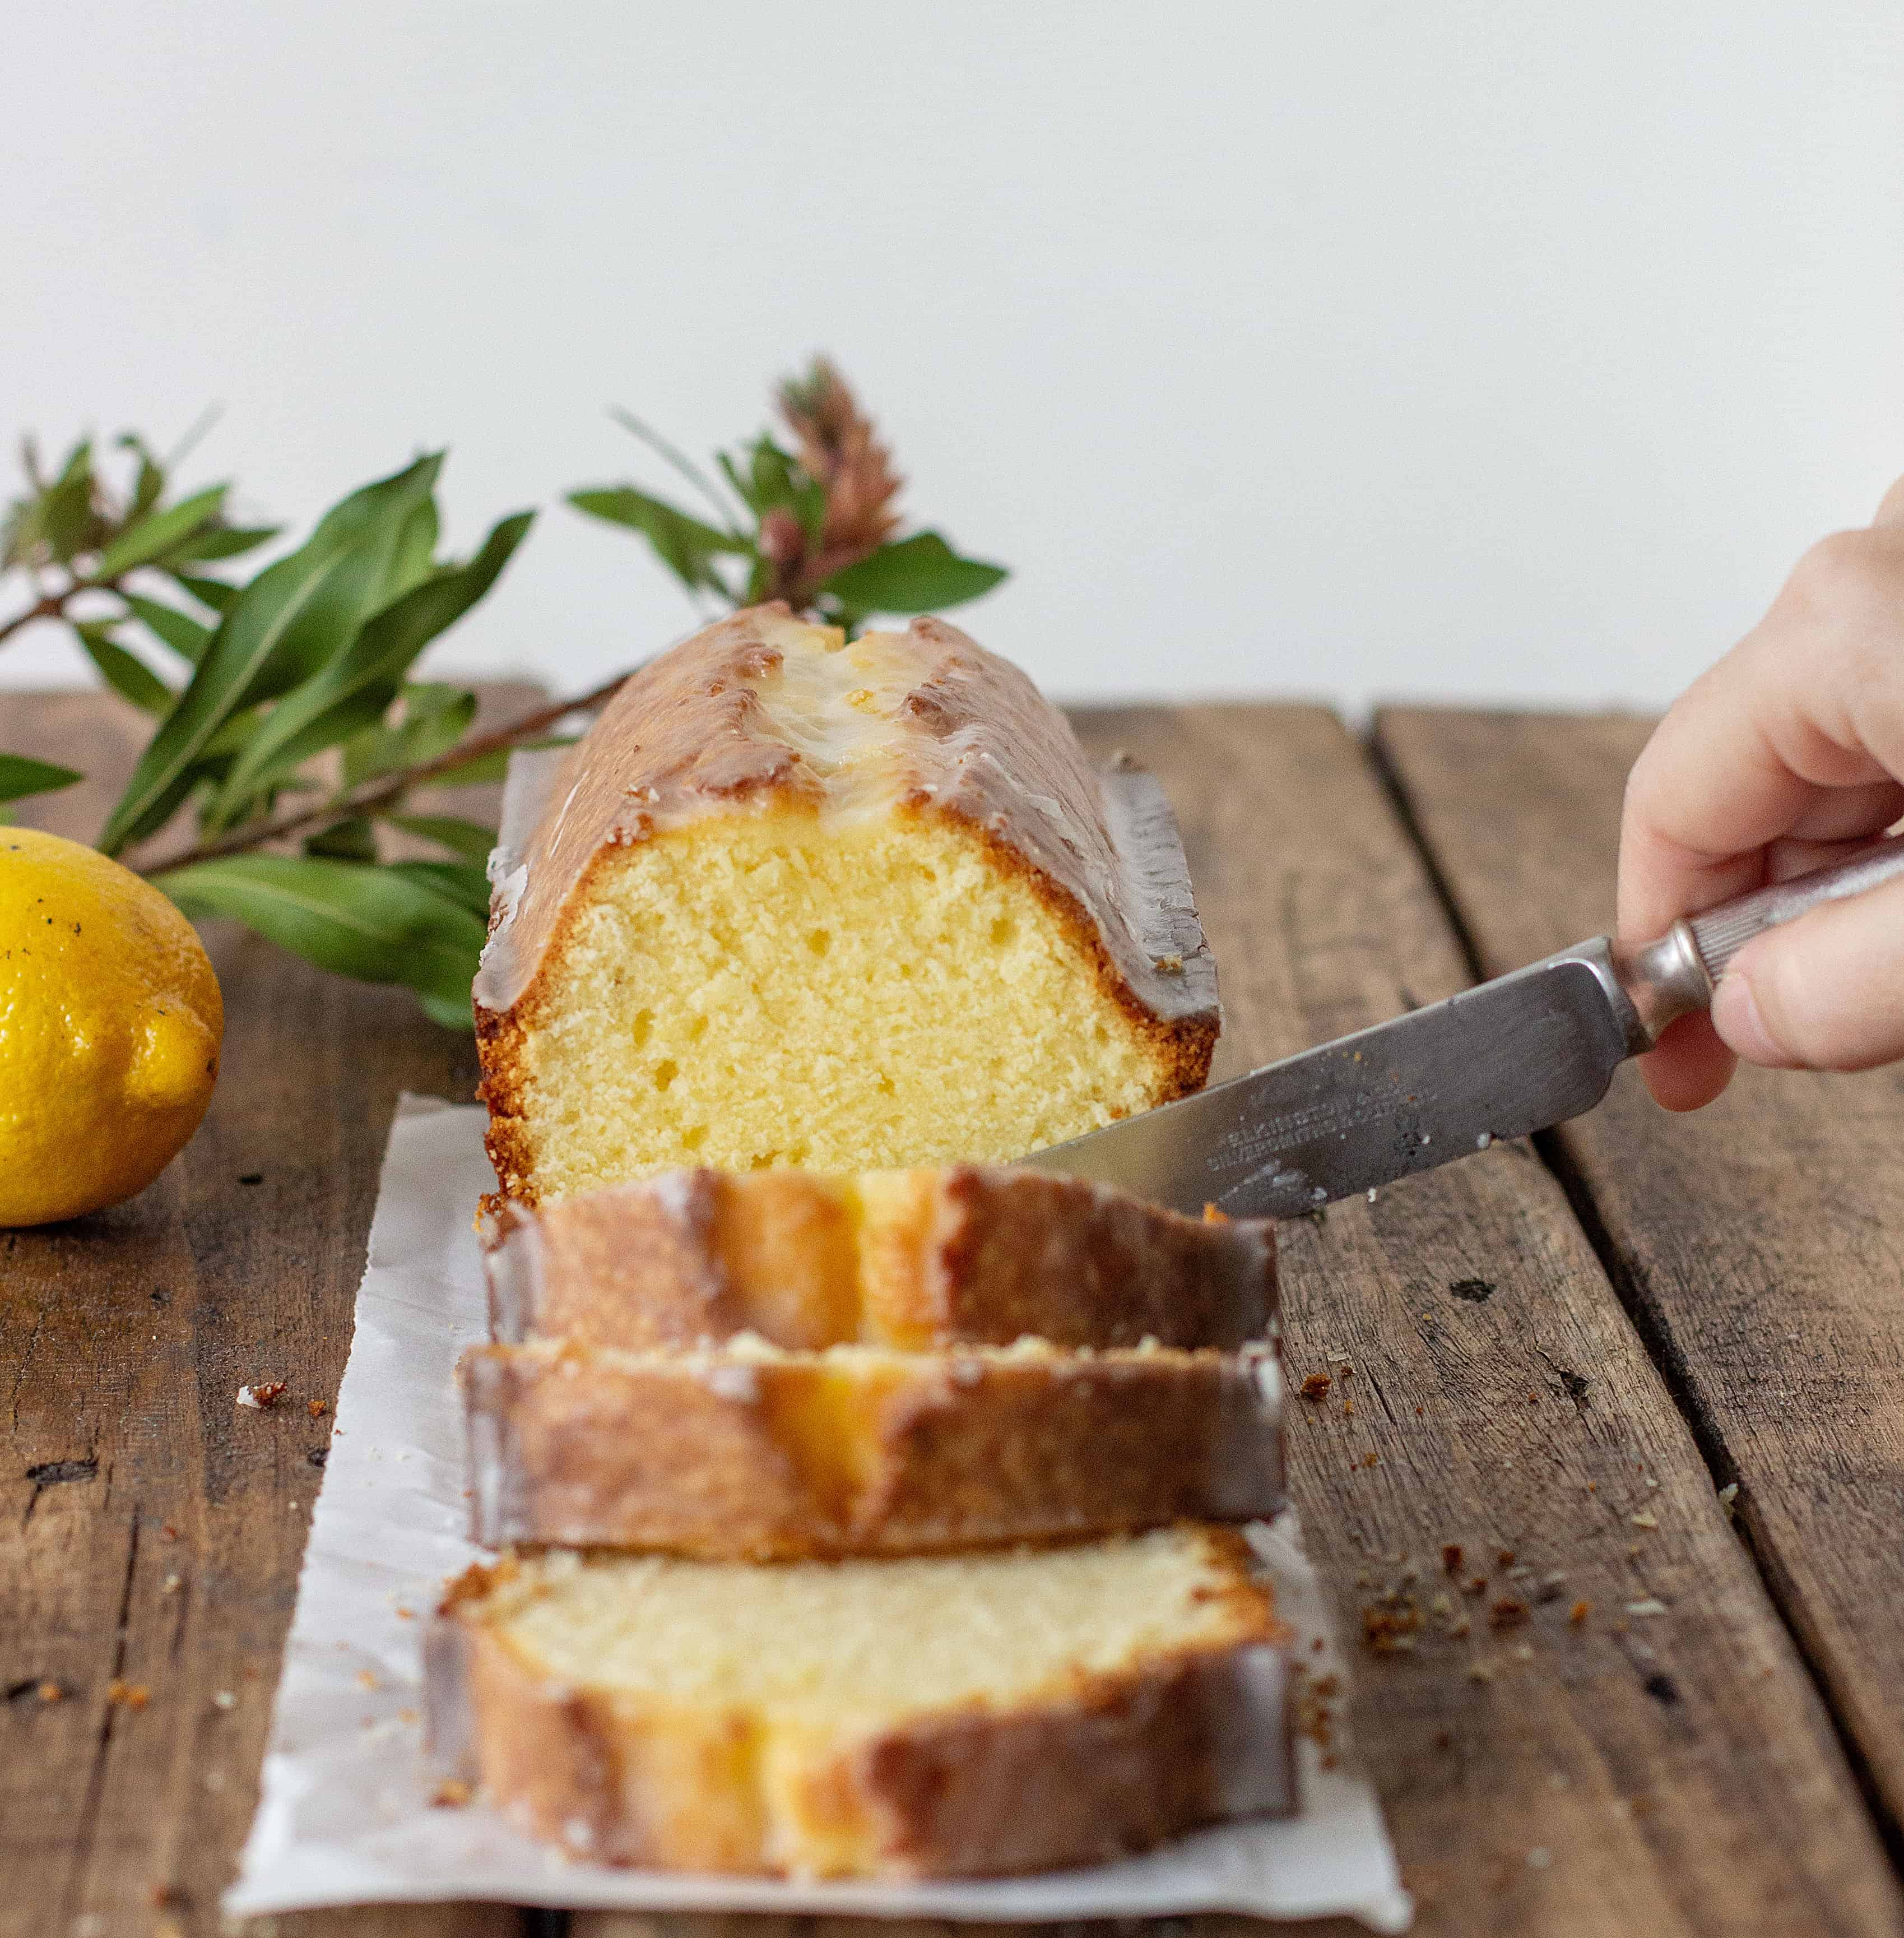 Cutting pound cake slices on a wooden board, lemon and leaves as props